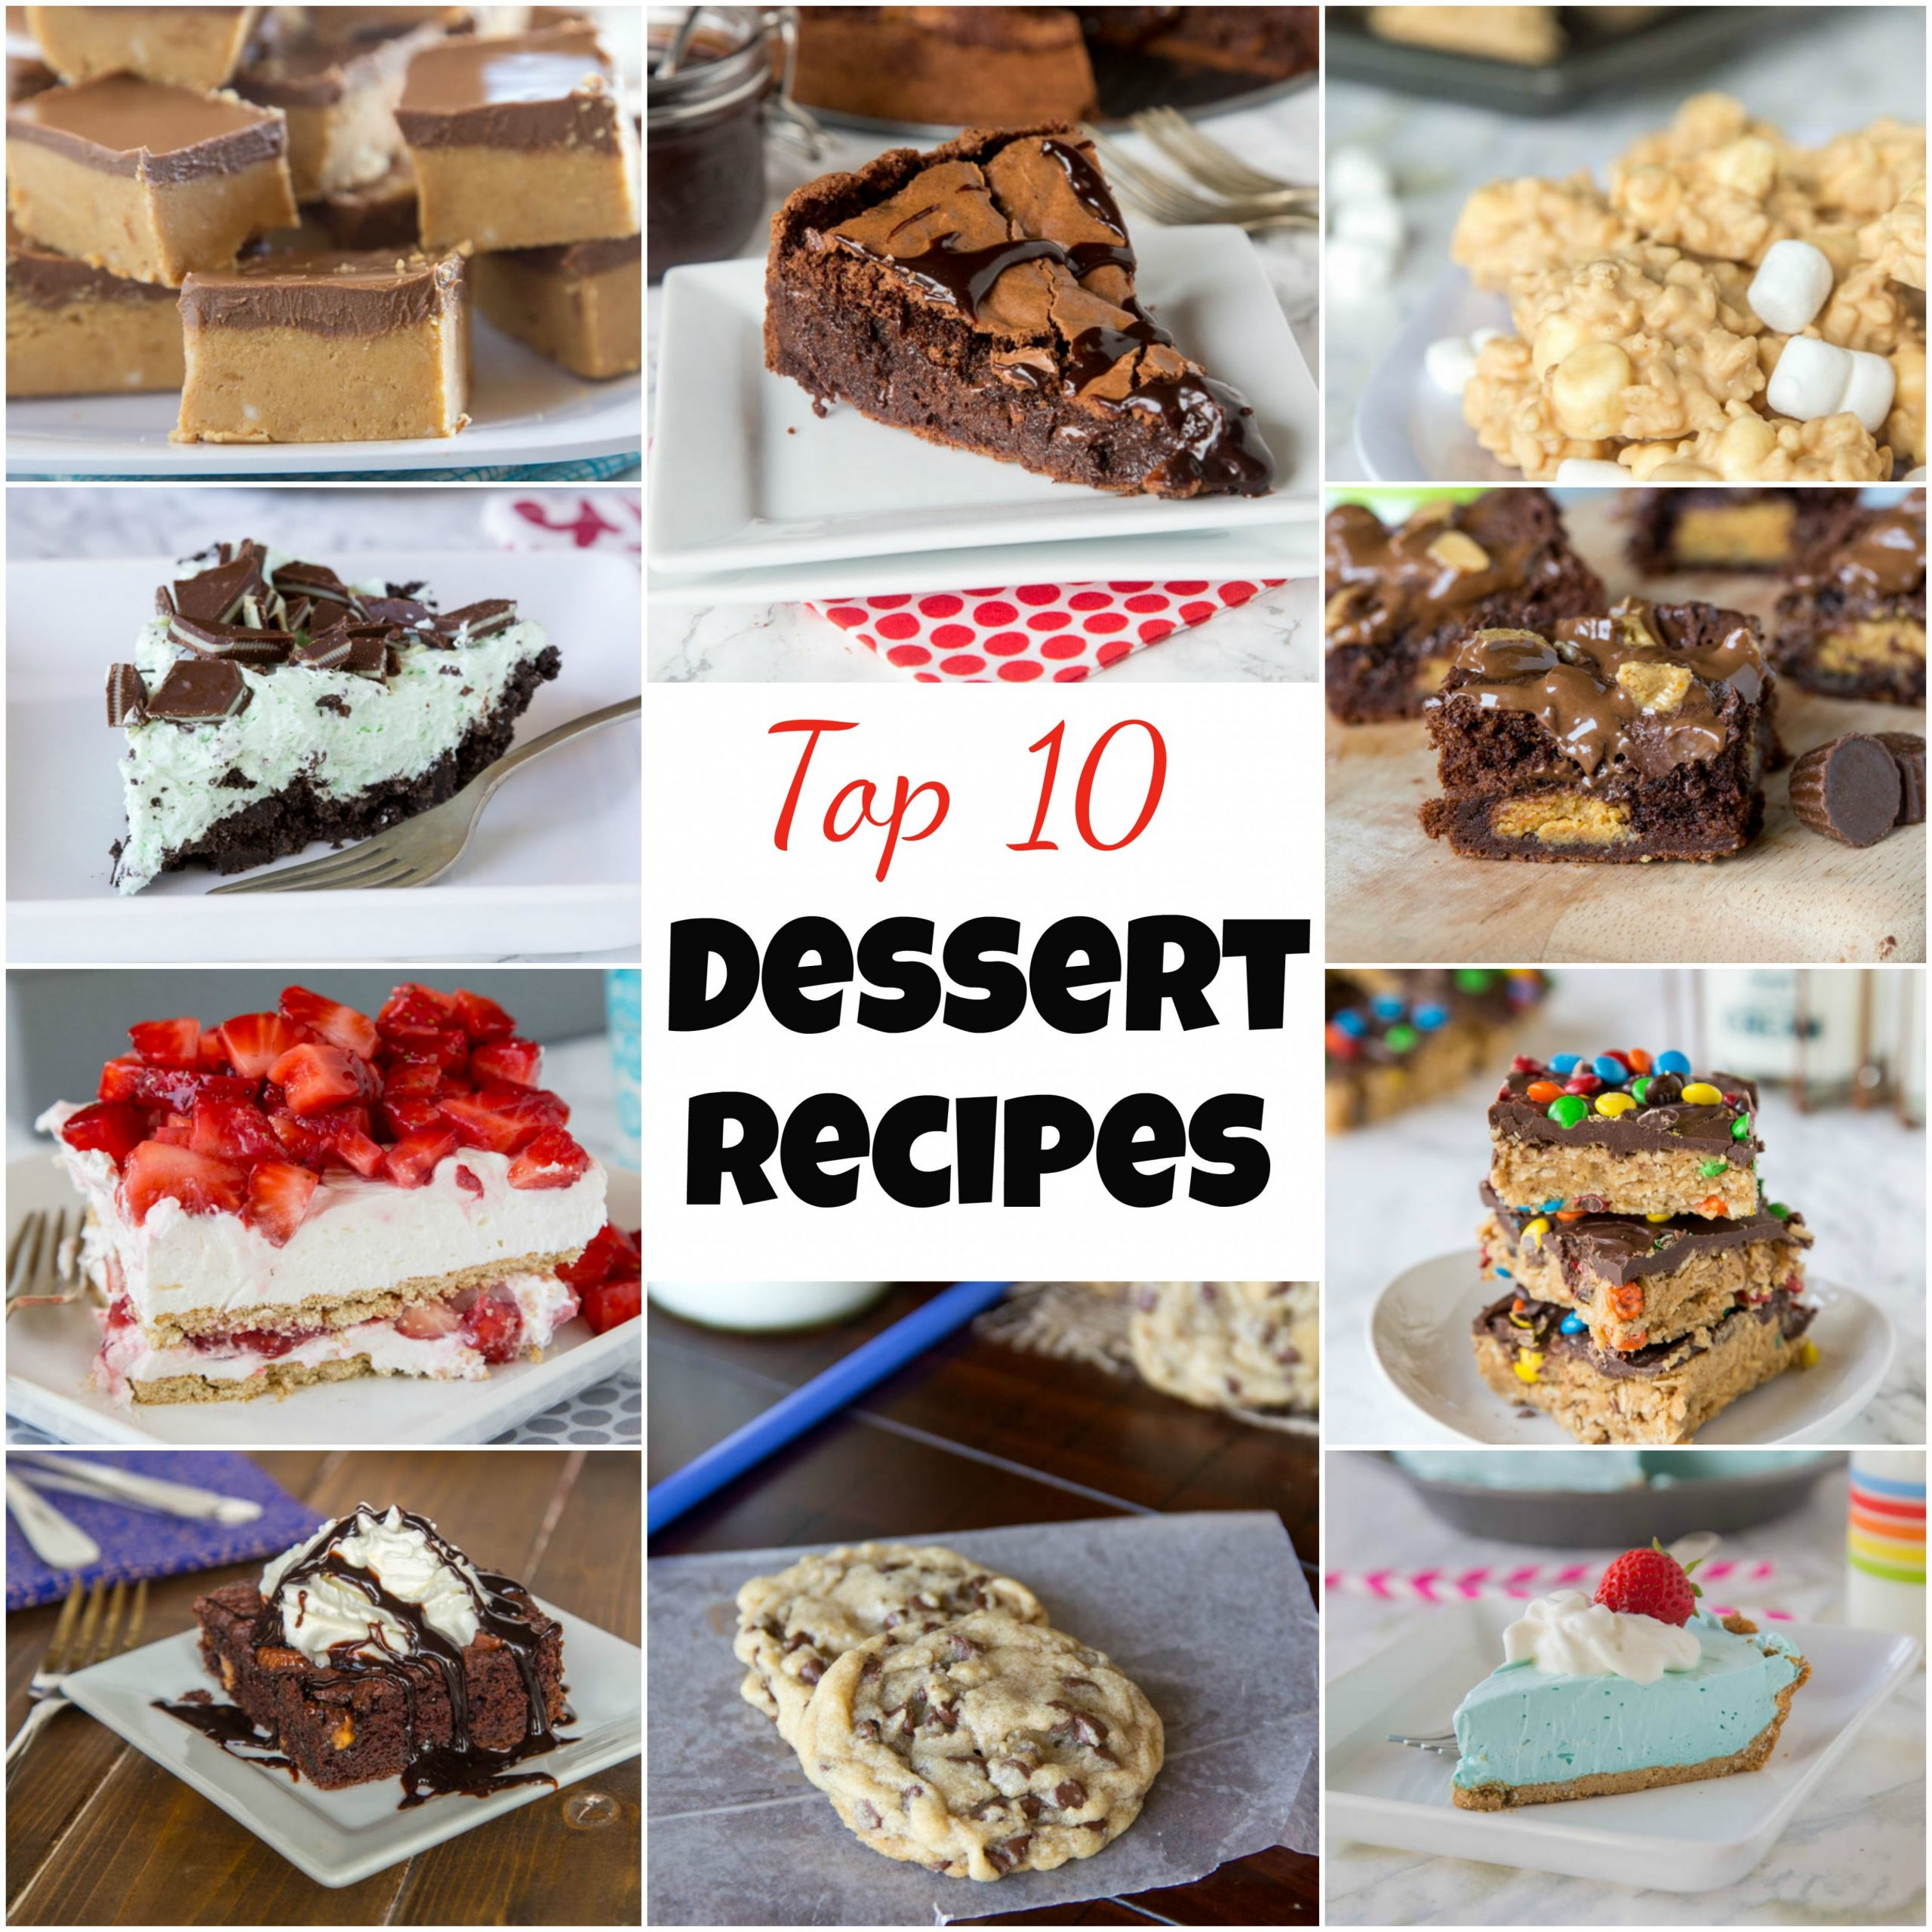 Top 10 Dessert Recipes - Dinners, Dishes, and Desserts